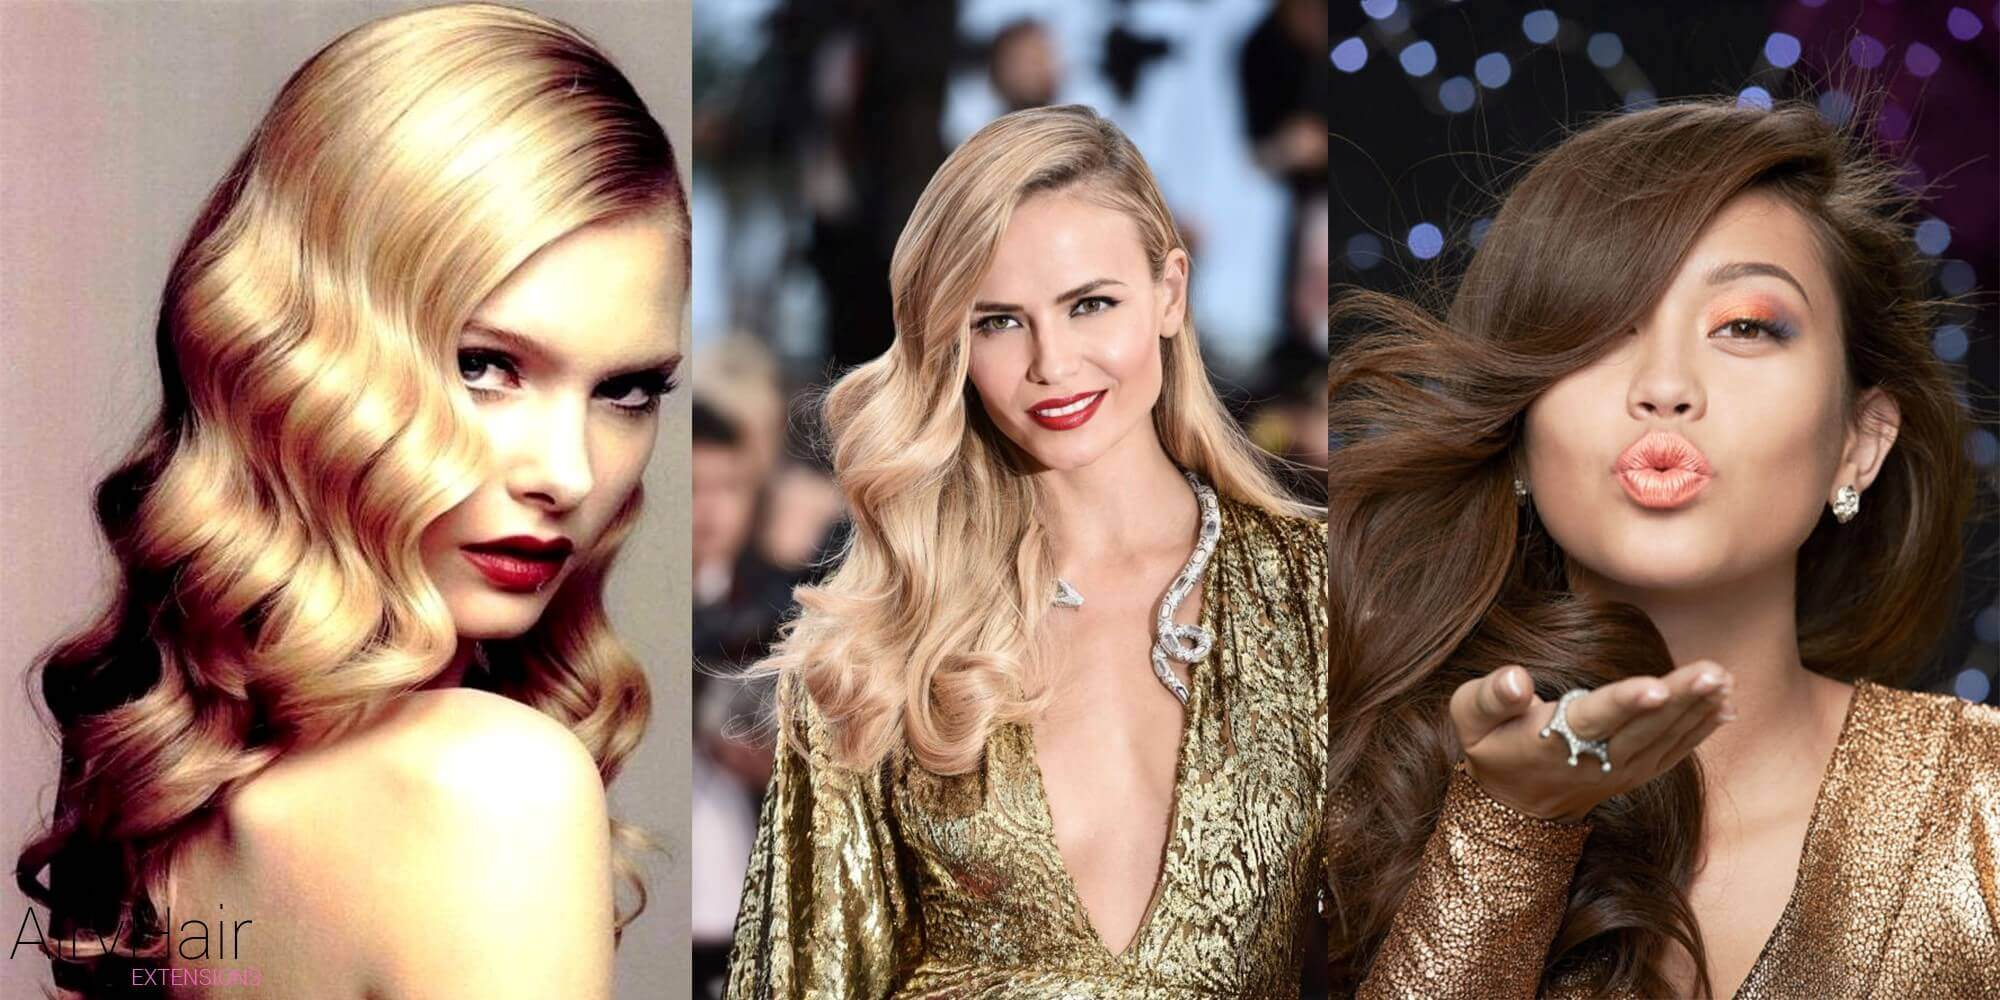 hair styles for new years eve 7 new year s hairstyles that will make you shine 8361 | glamorous waves